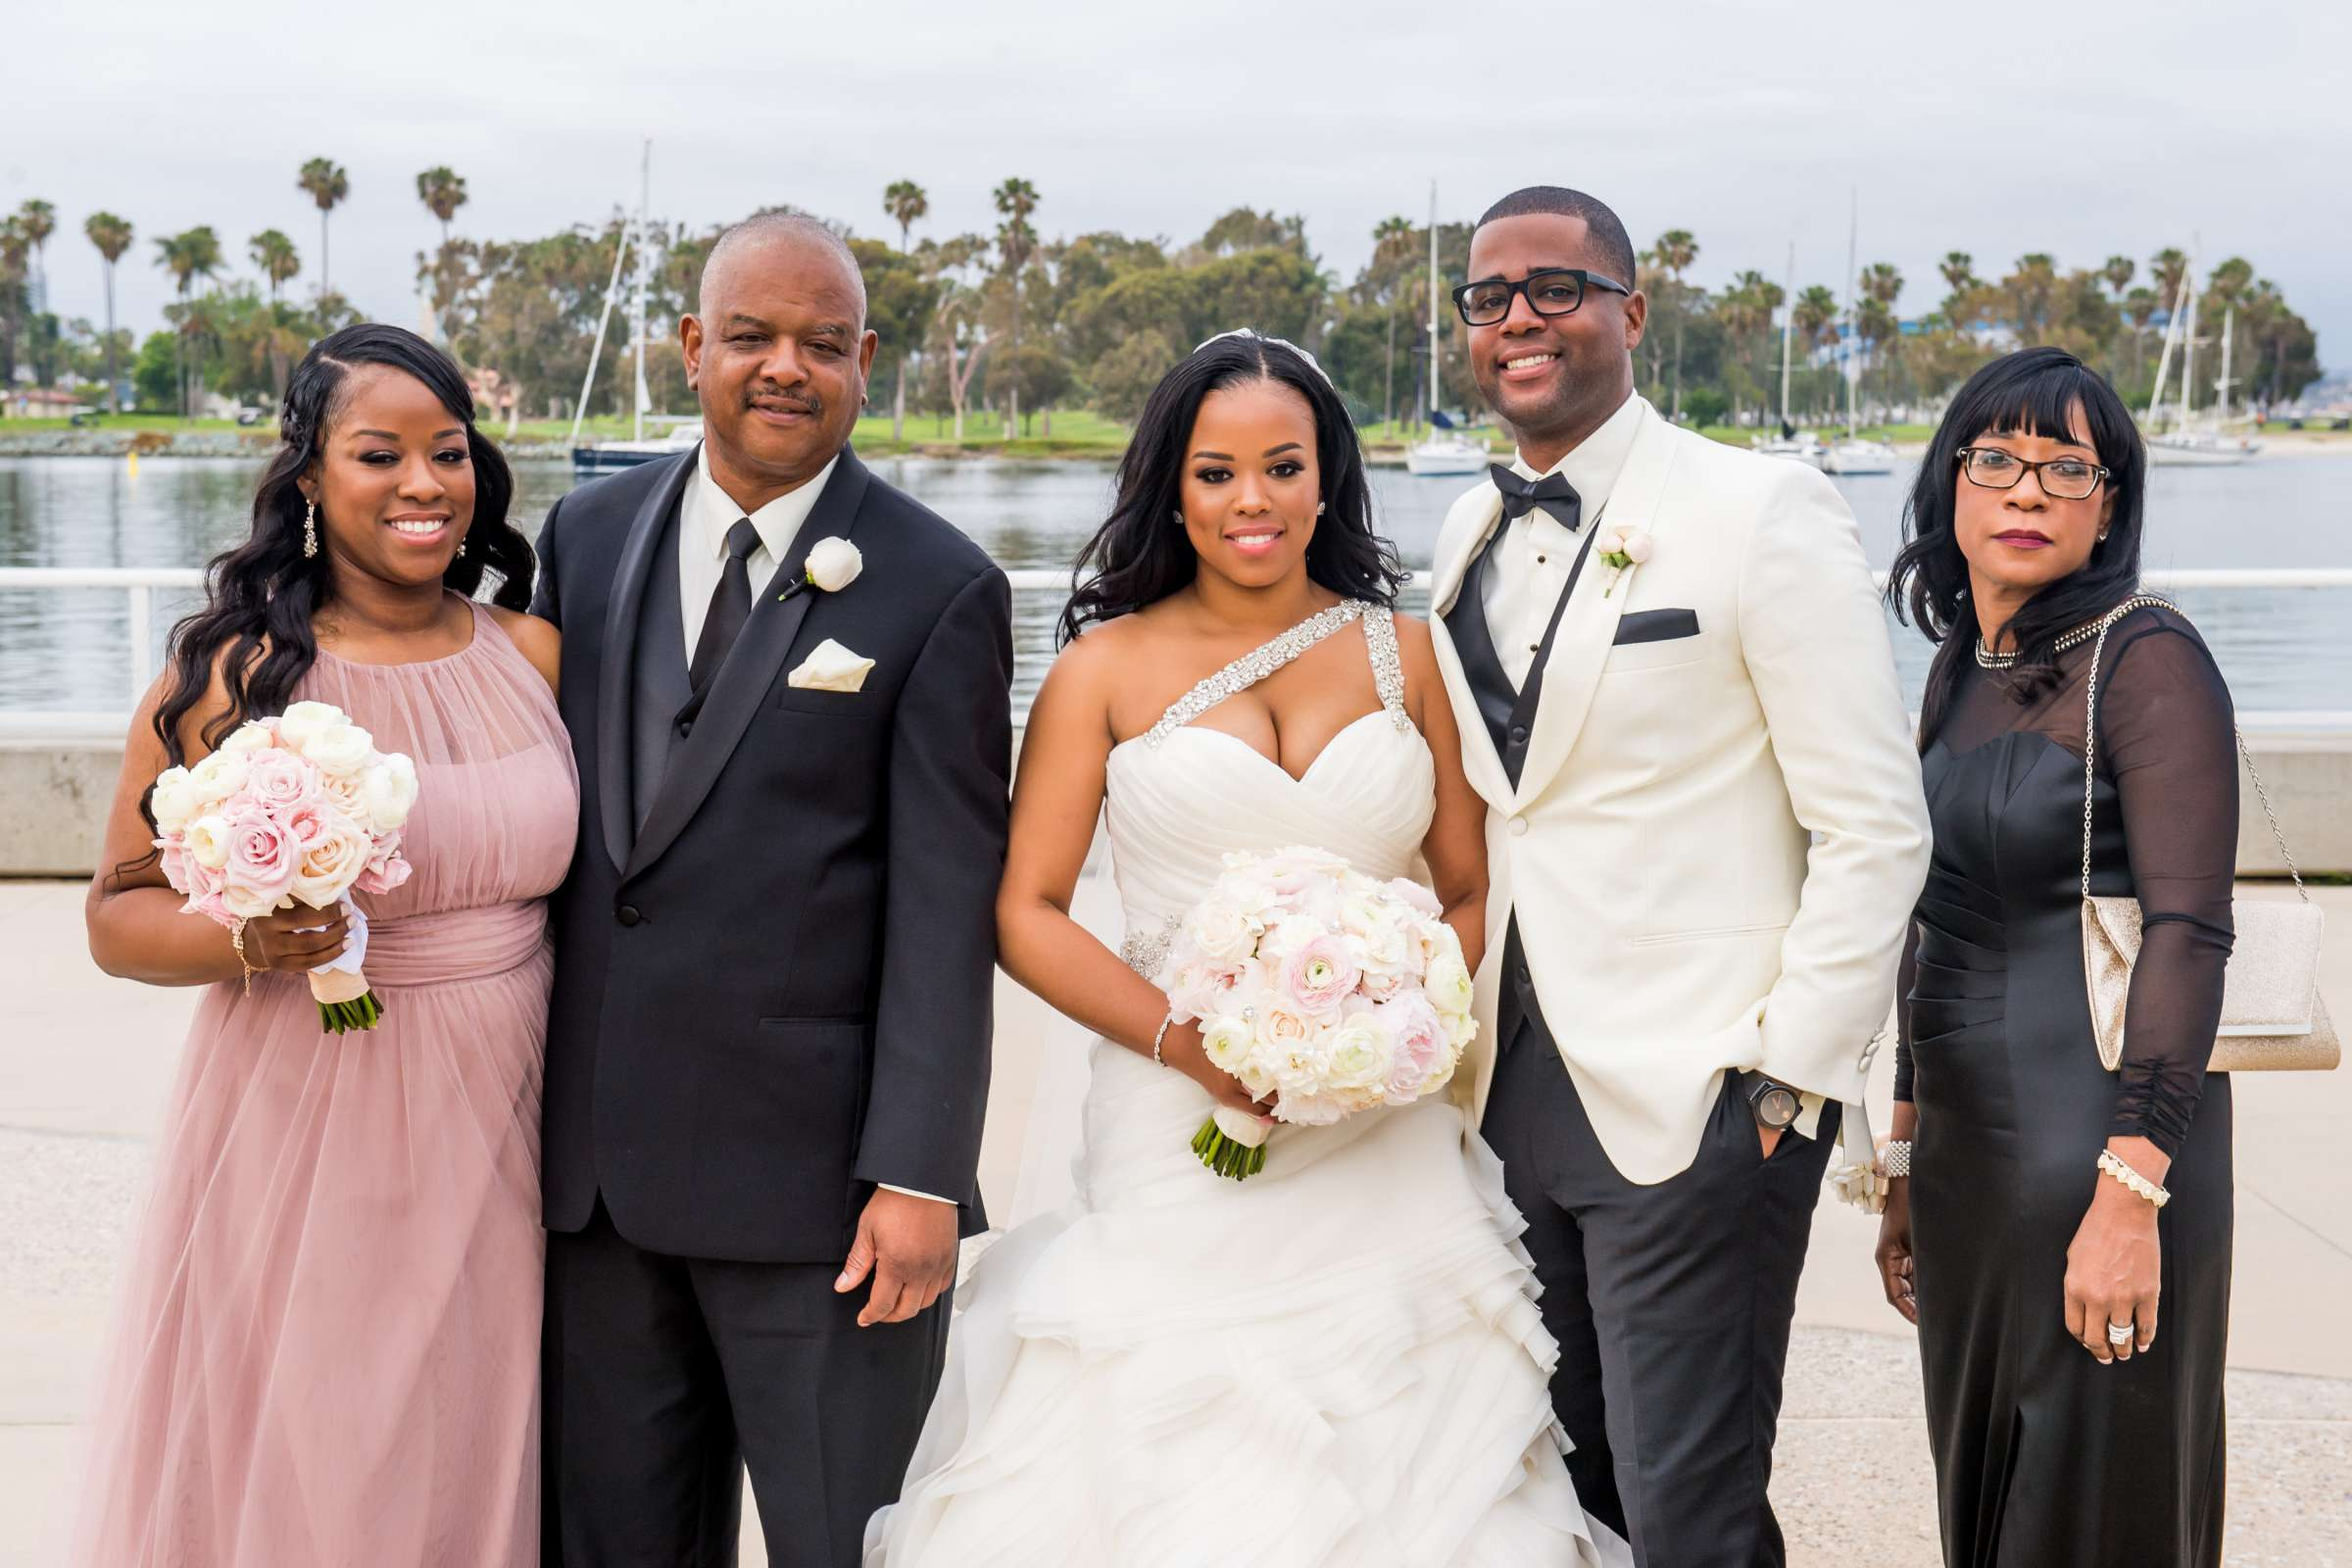 Coronado Community Center Wedding coordinated by First Comes Love Weddings & Events, Nikia and Charles Wedding Photo #59 by True Photography